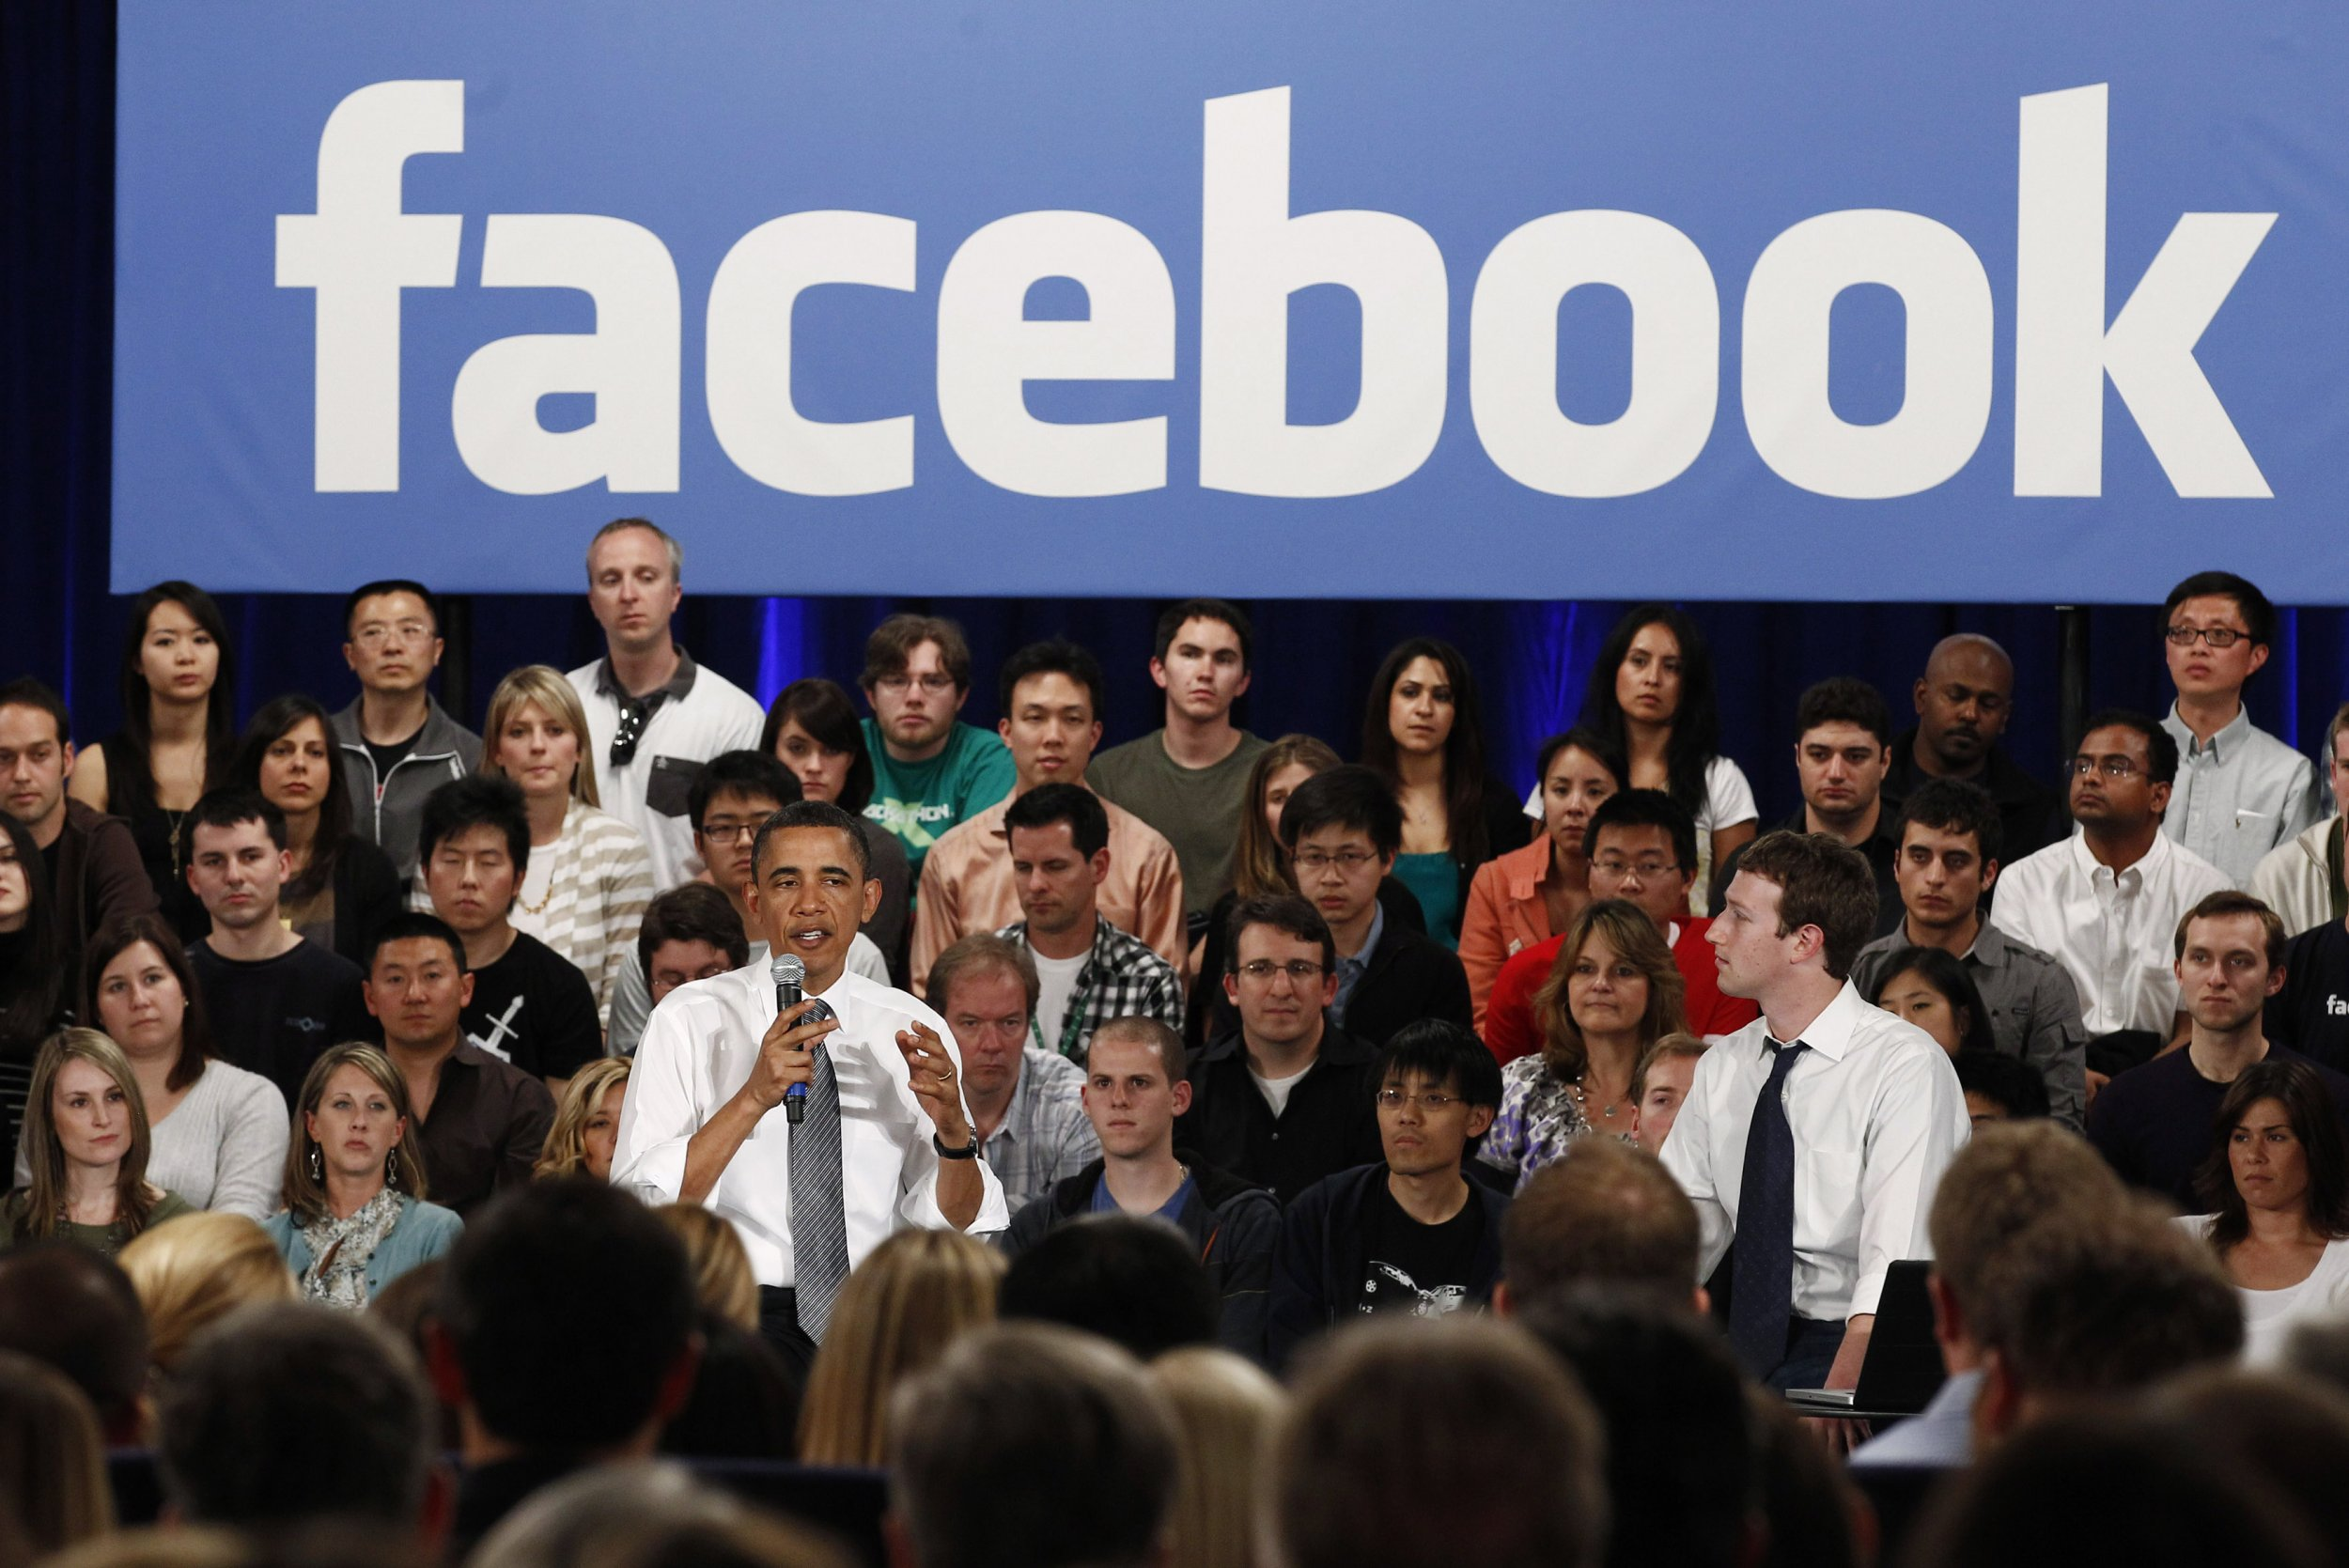 Facebook It: Is Facebook—and Zuckerberg—Liberal Or Conservative? It's